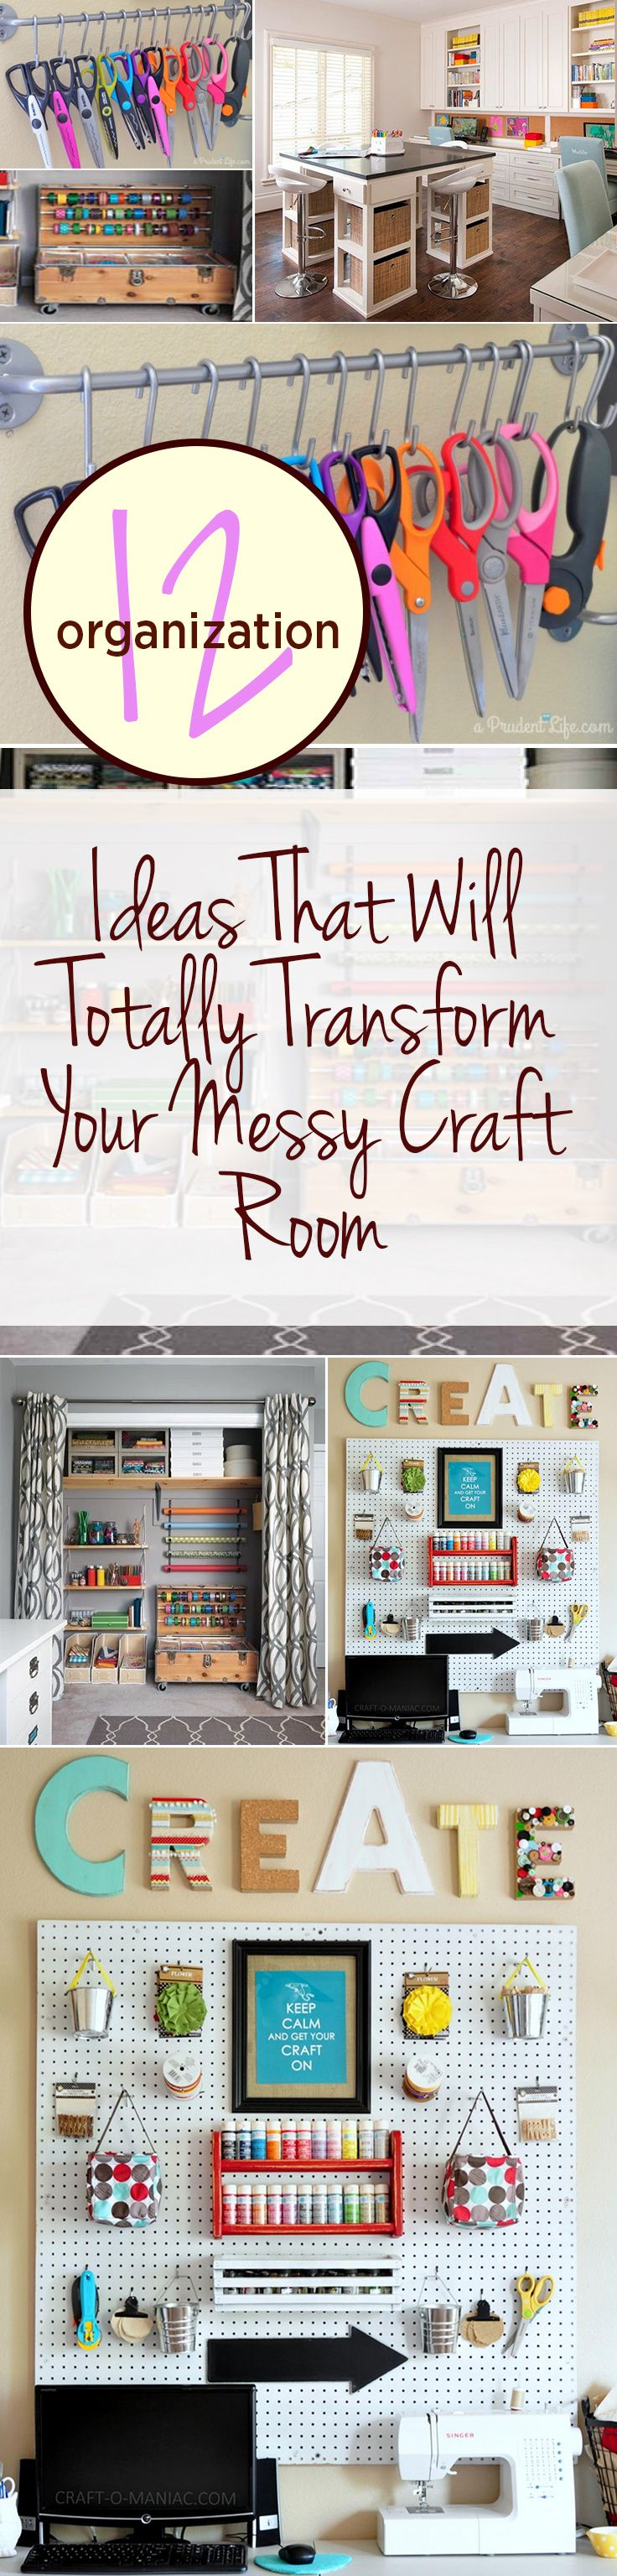 12 Organization Ideas That Will Totally Transform Your Messy Craft